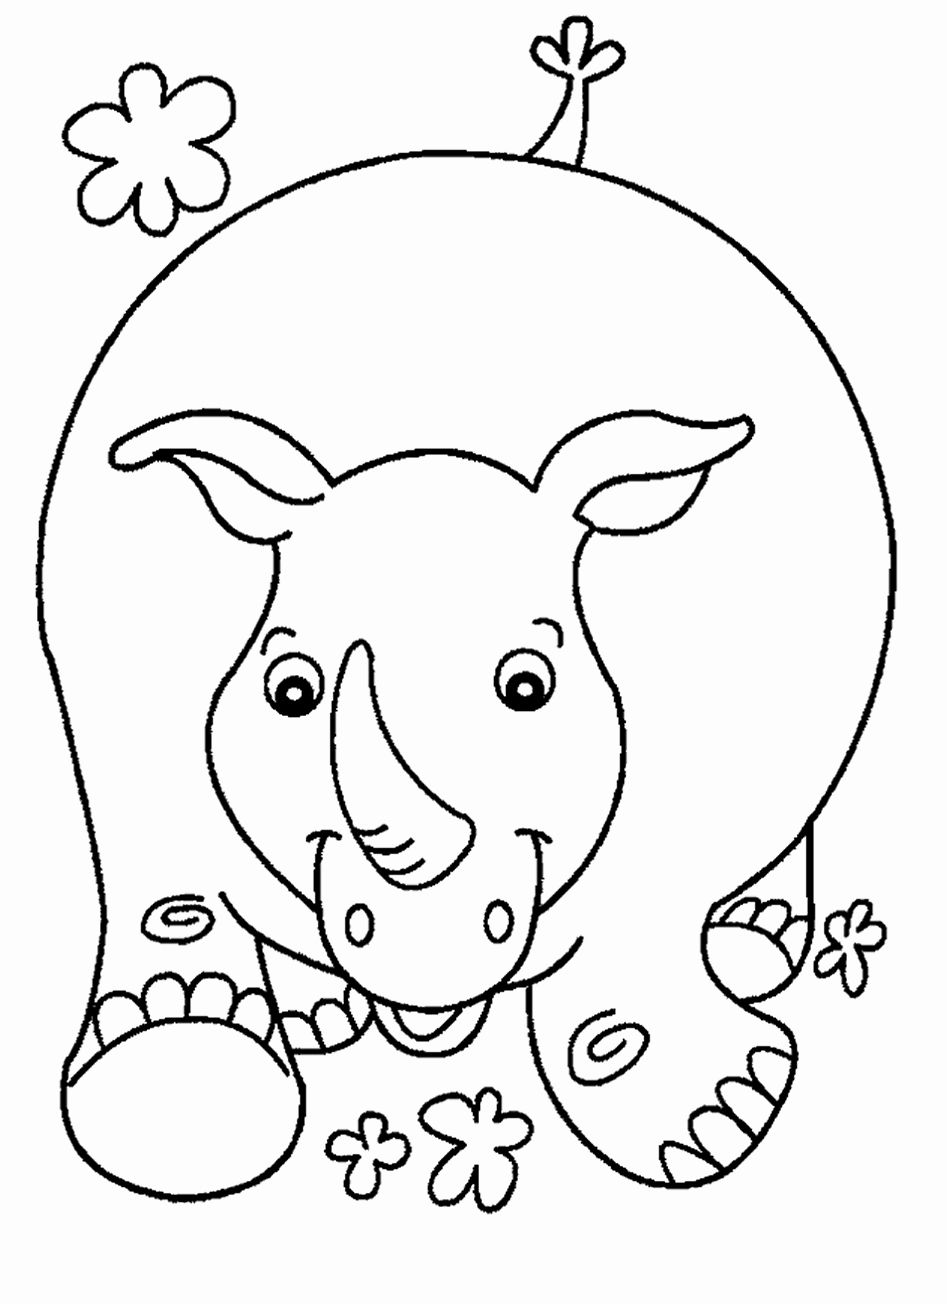 baby zoo animal coloring pages zoo coloring pages zoo coloring pages zoo animal zoo coloring baby pages animal